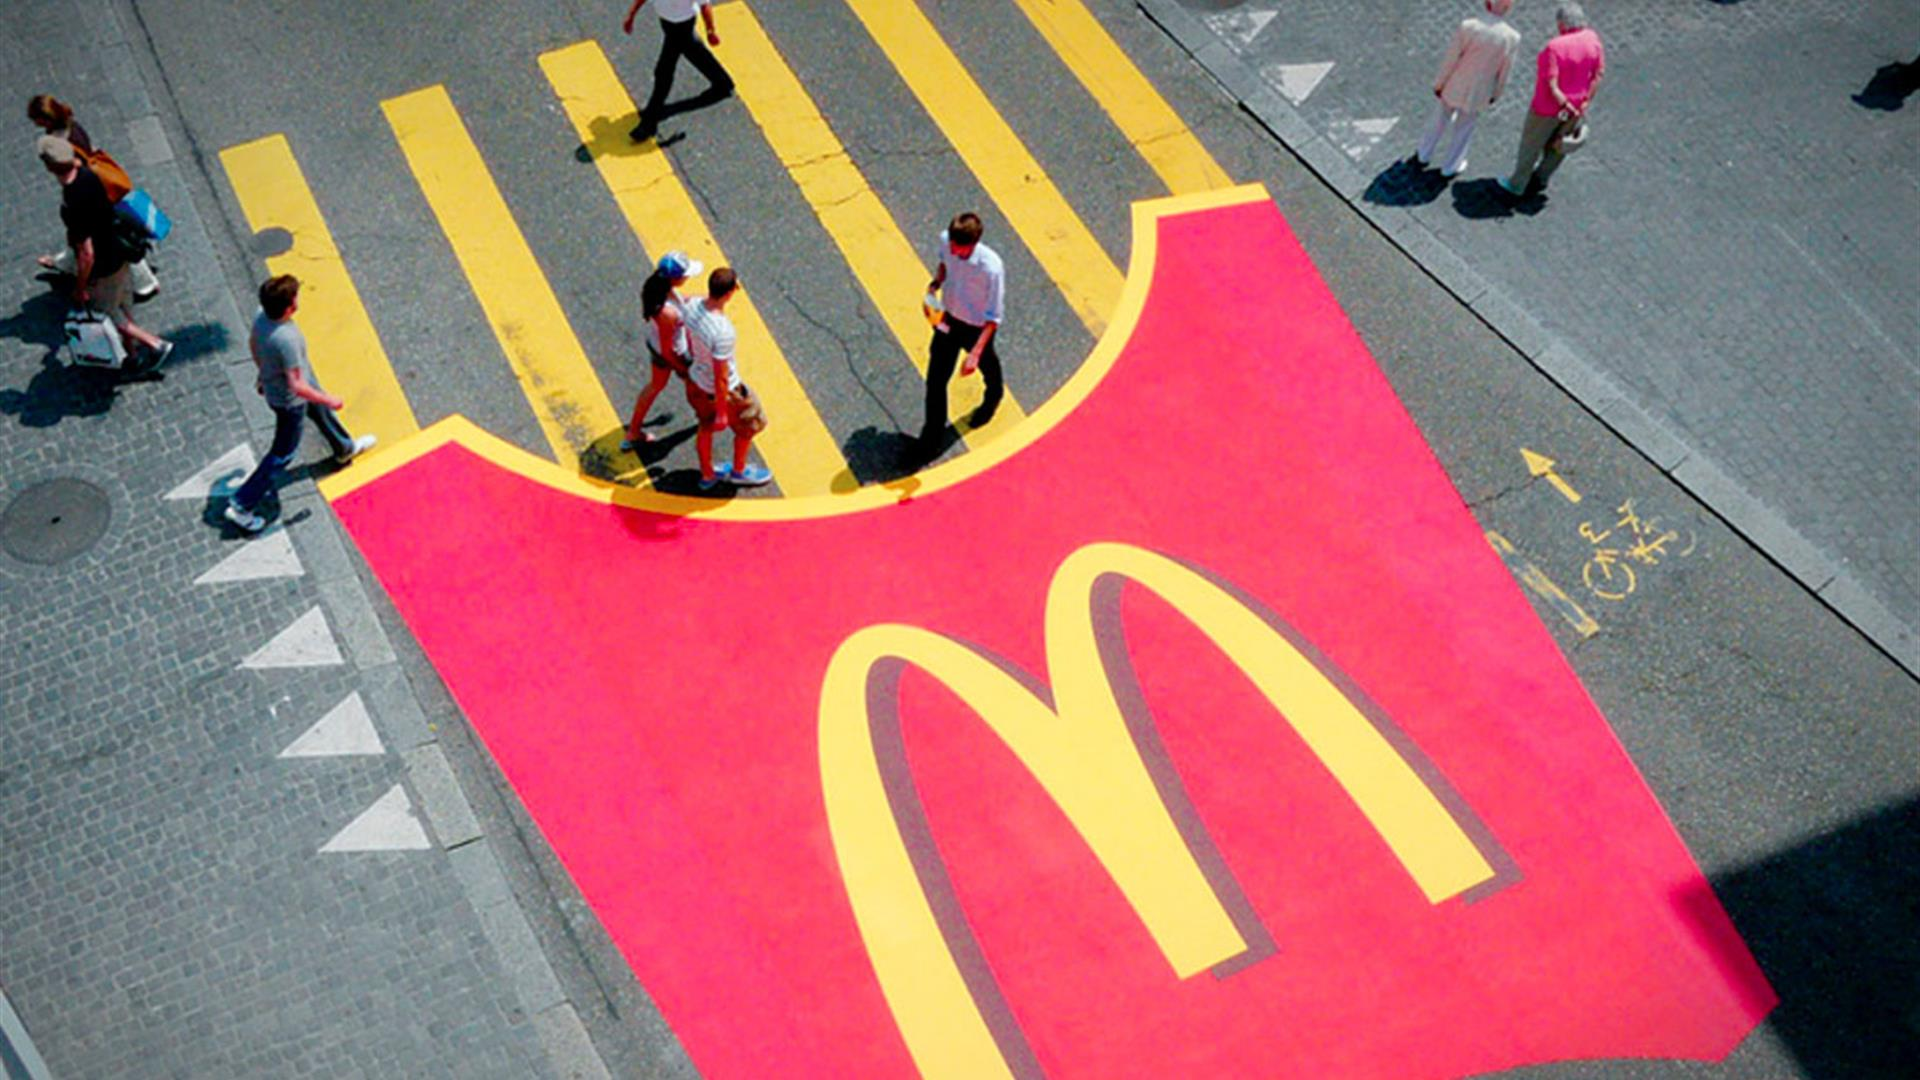 Strisce Gialle Mc Donalds